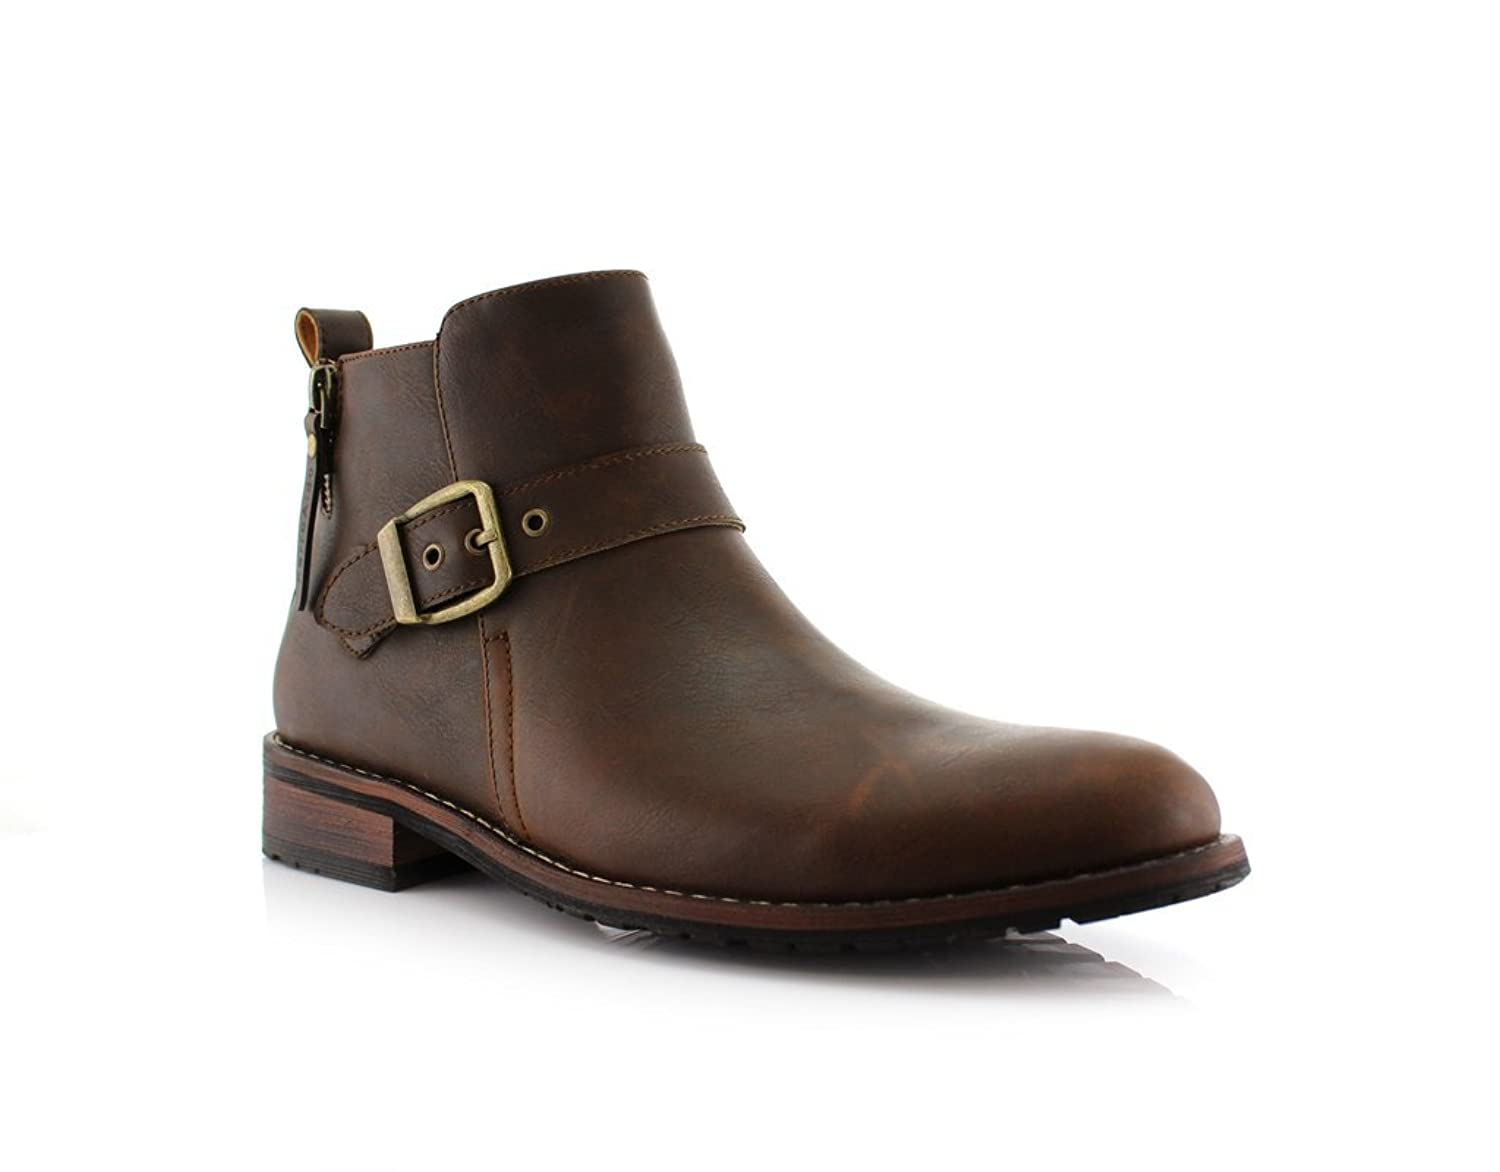 New Men's Designer Buckle Accent Distressed Round Toe Dress Boots